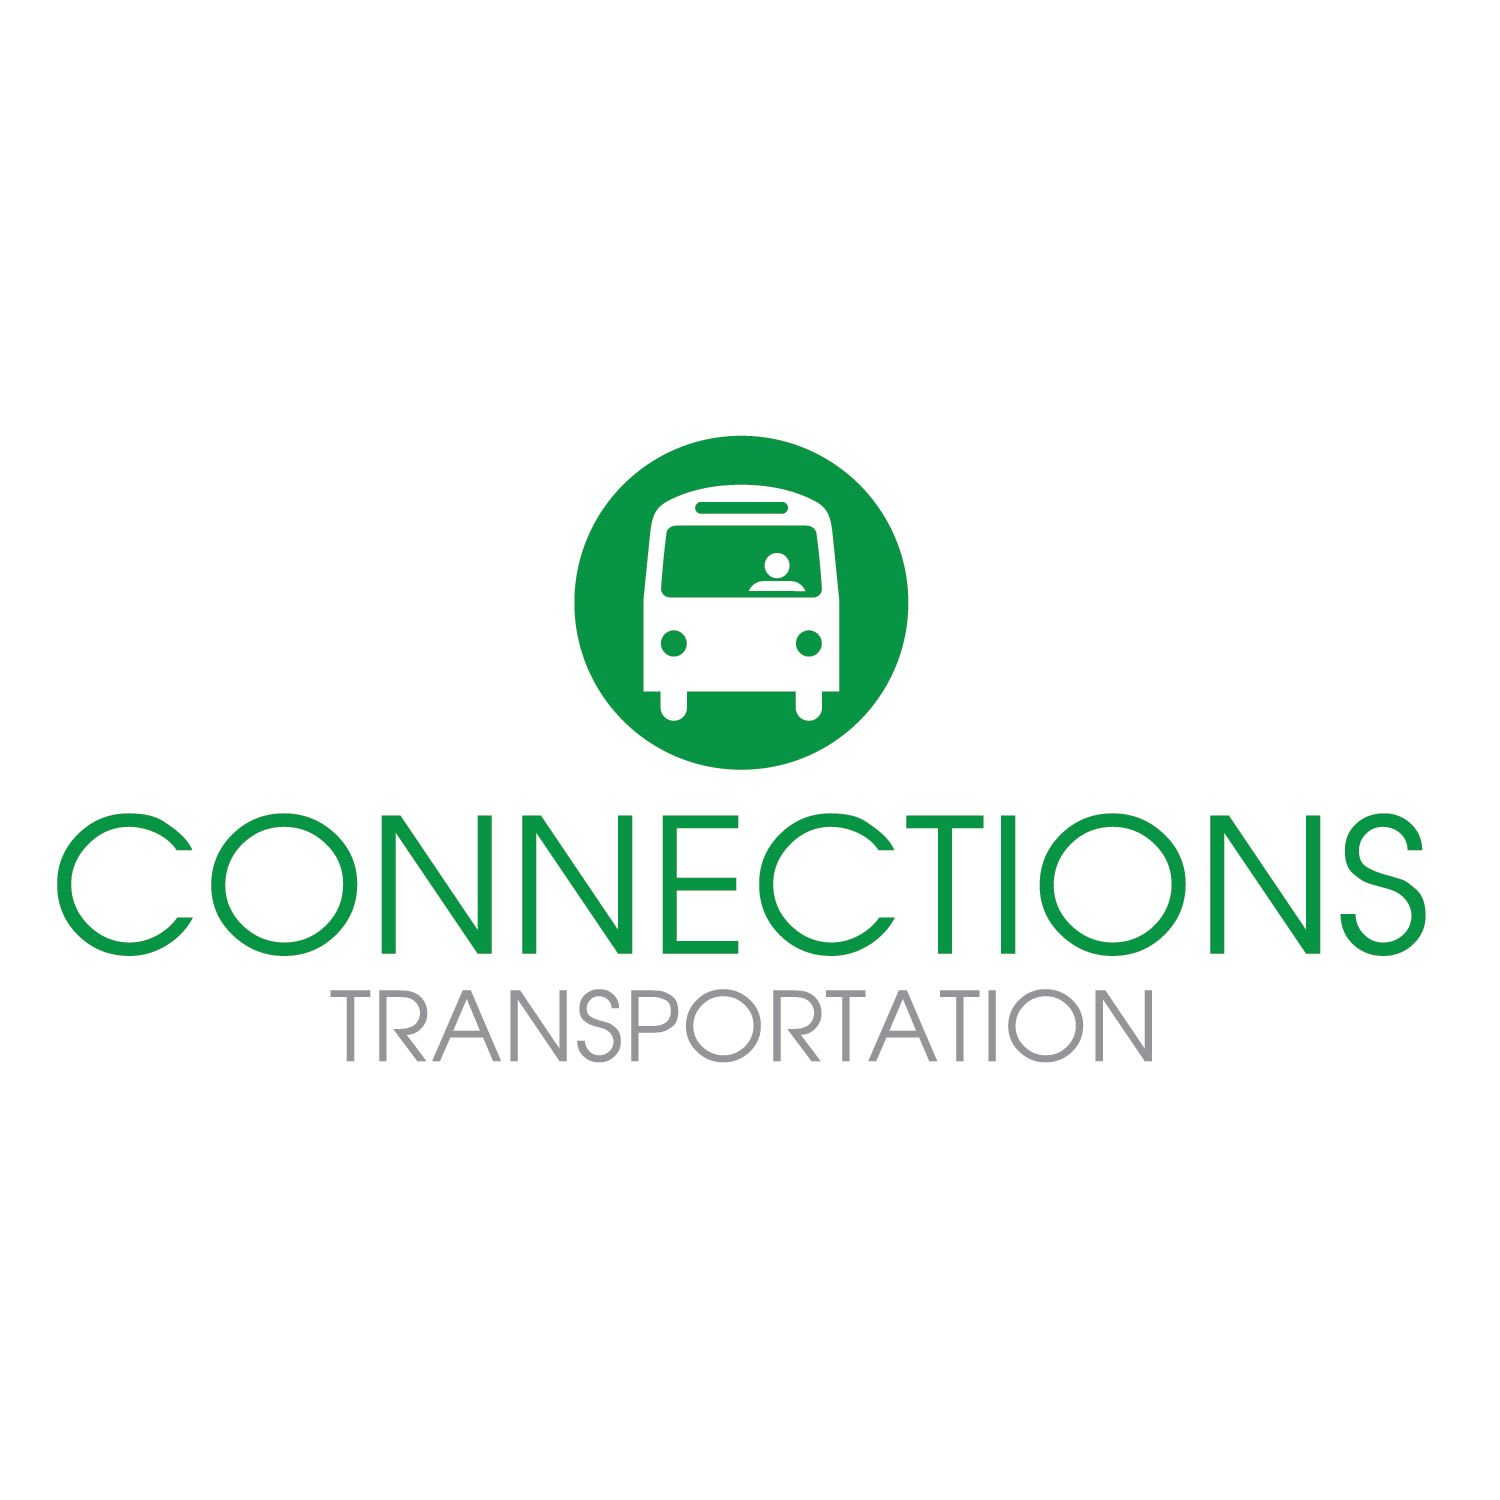 Transportation connections for Oak Park Village Hammond senior living residents.